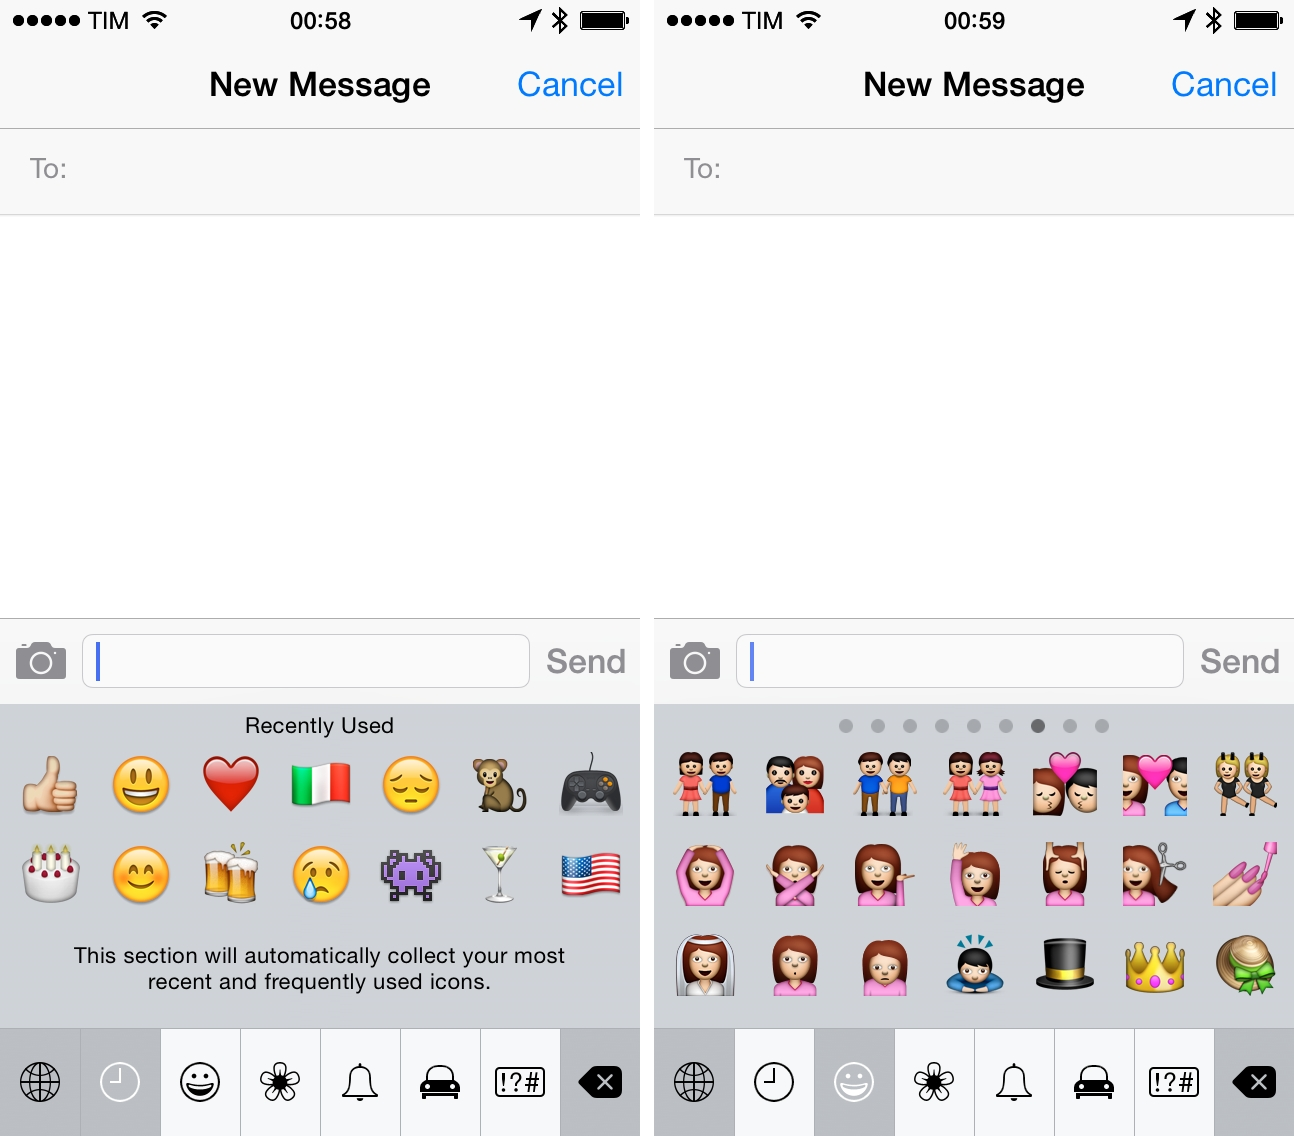 Emoji characters in iOS 7.